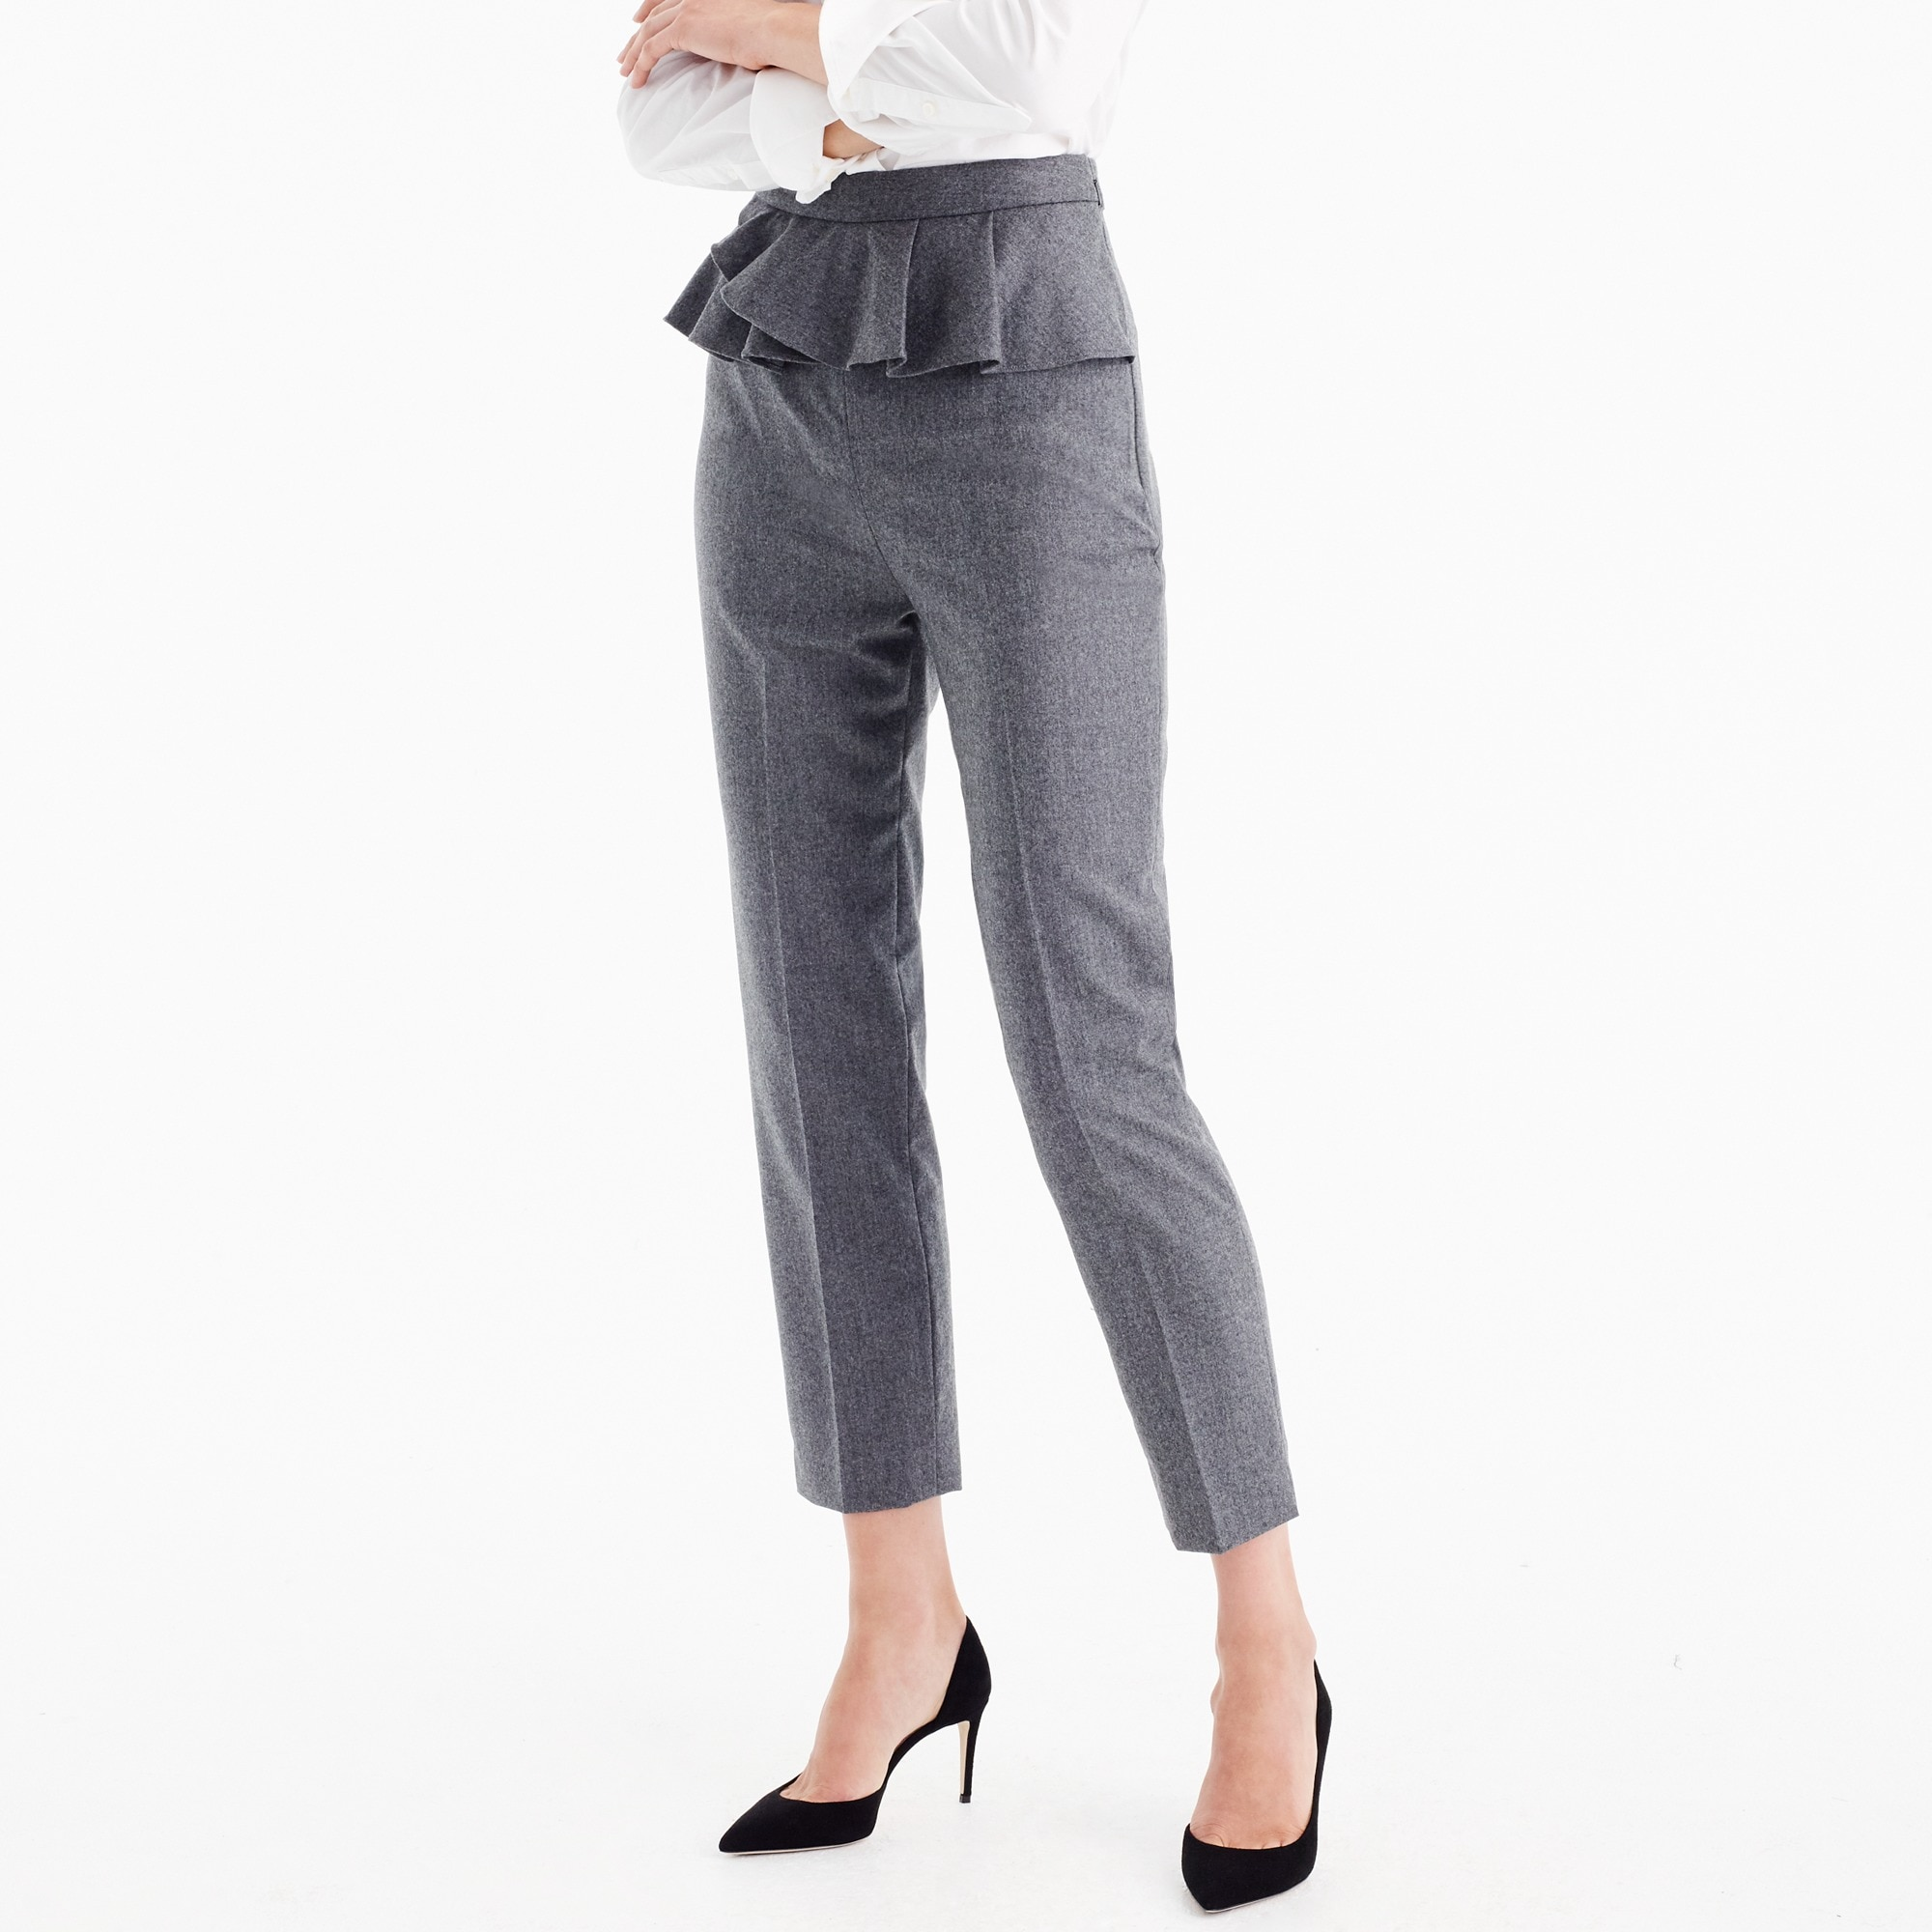 Slim trouser with ruffle waist in wool flannel